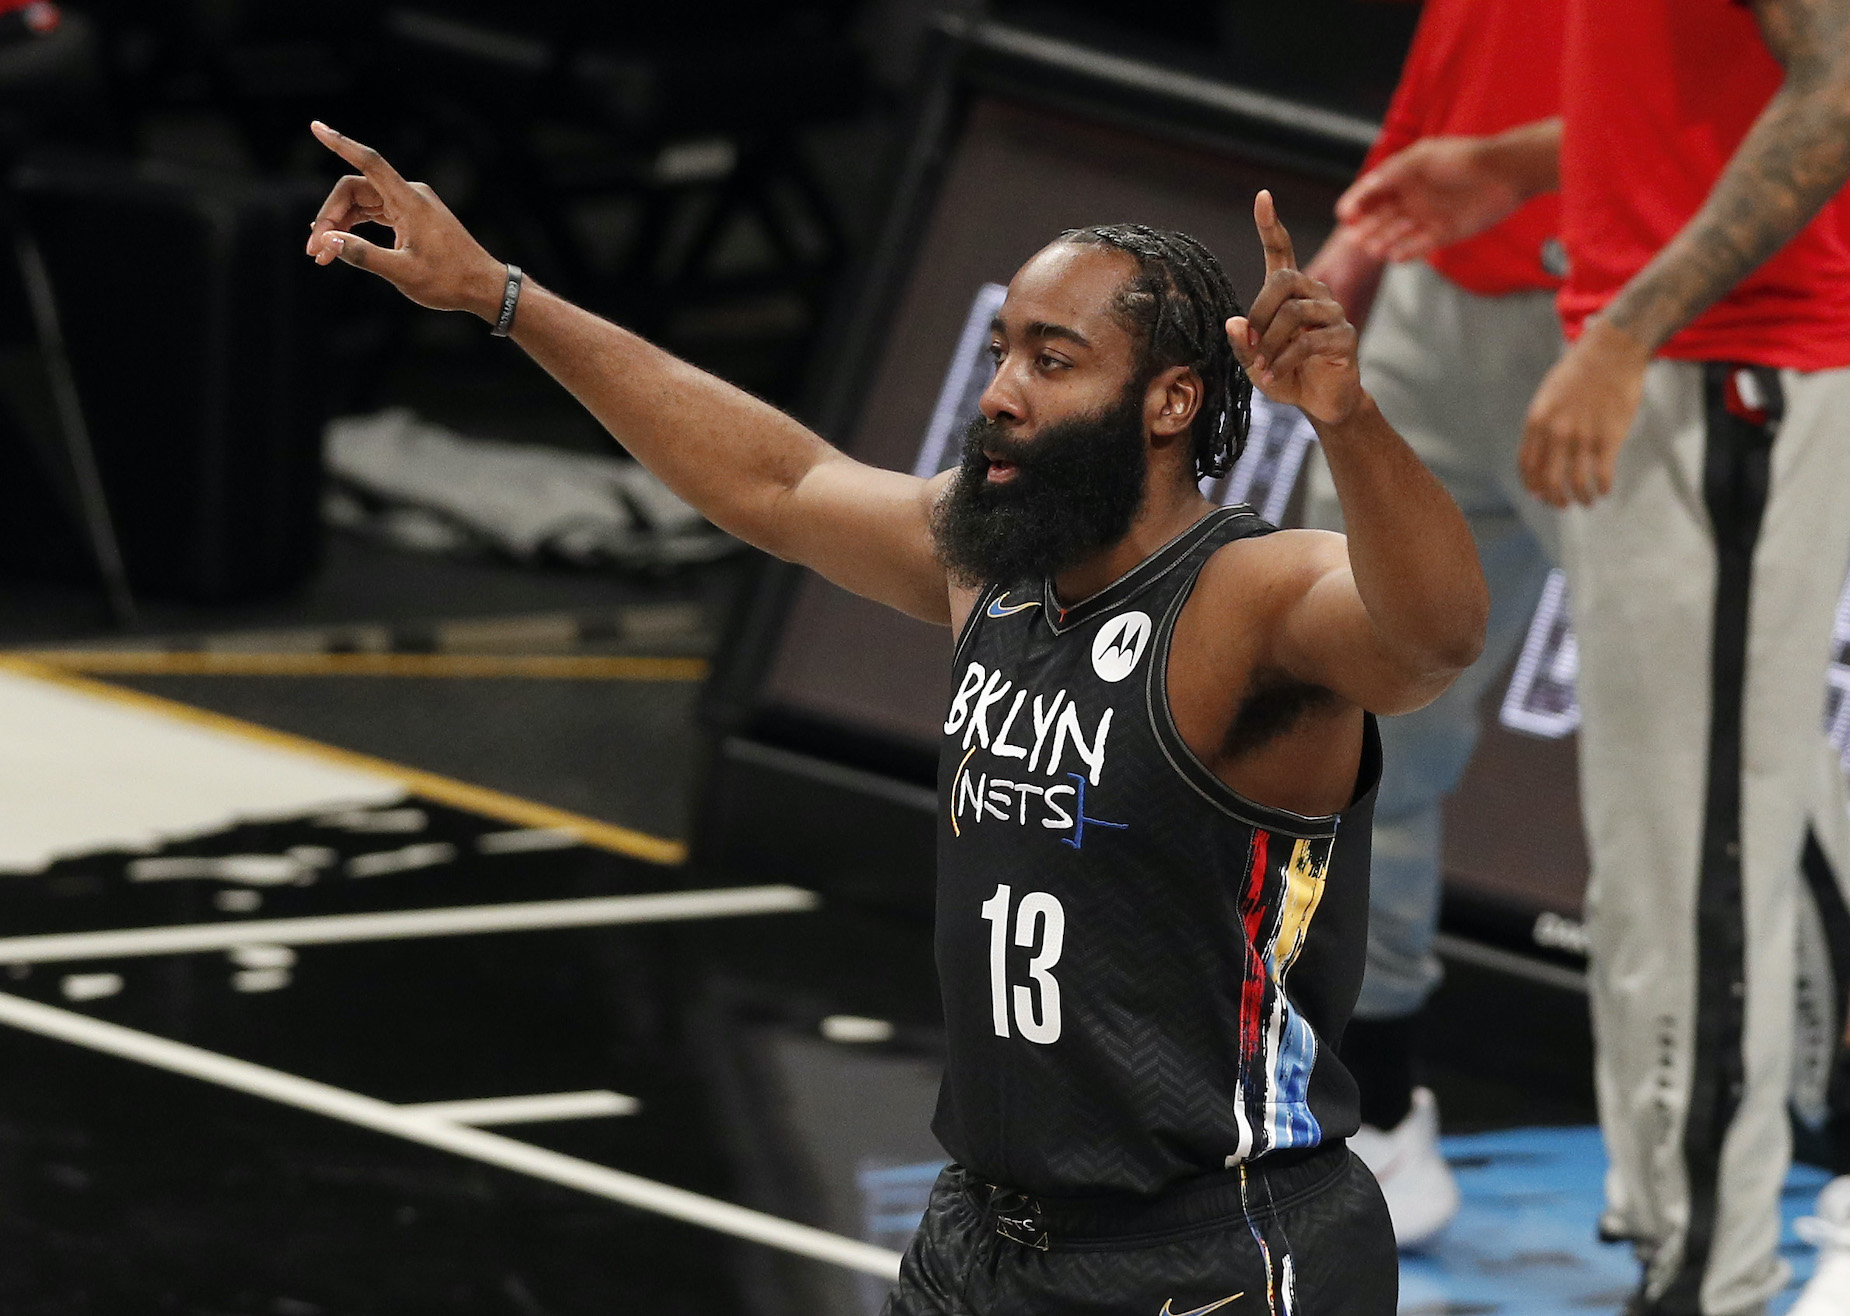 James Harden, who started the 2020-21 season with the Houston Rockets, in action as a member of the Brooklyn Nets.